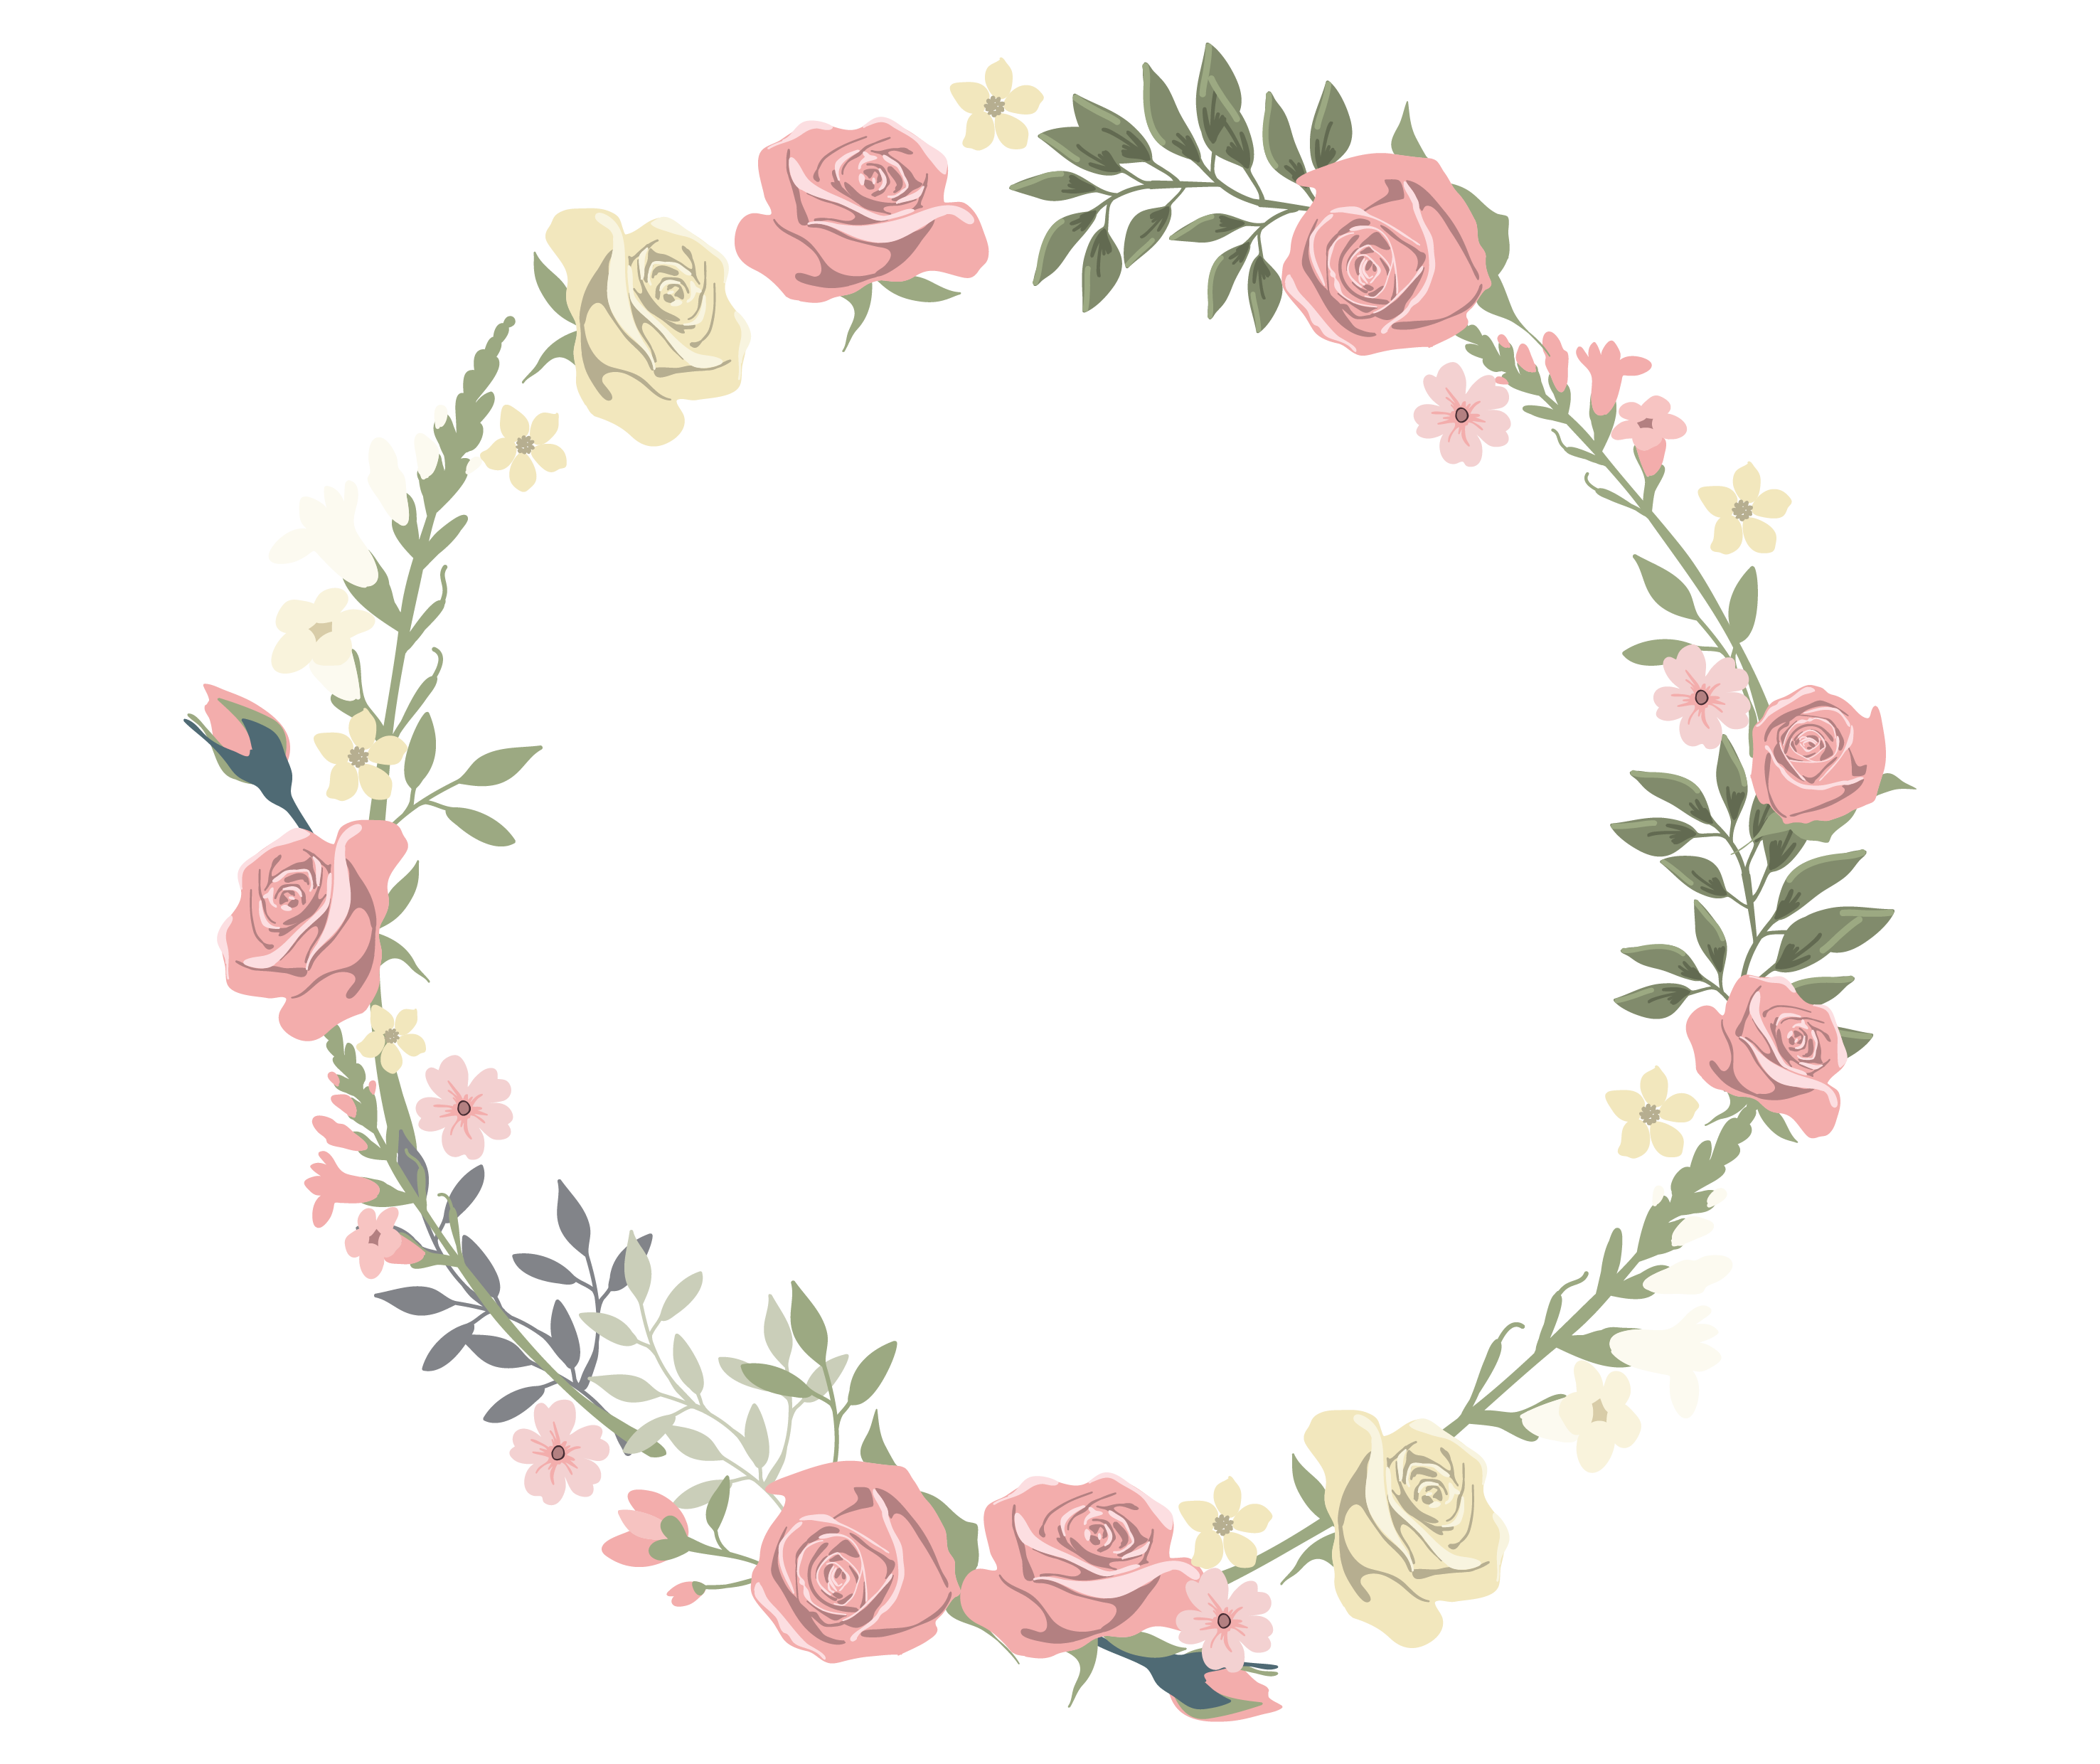 Flower crown pinterest. Mexican clipart transparent free